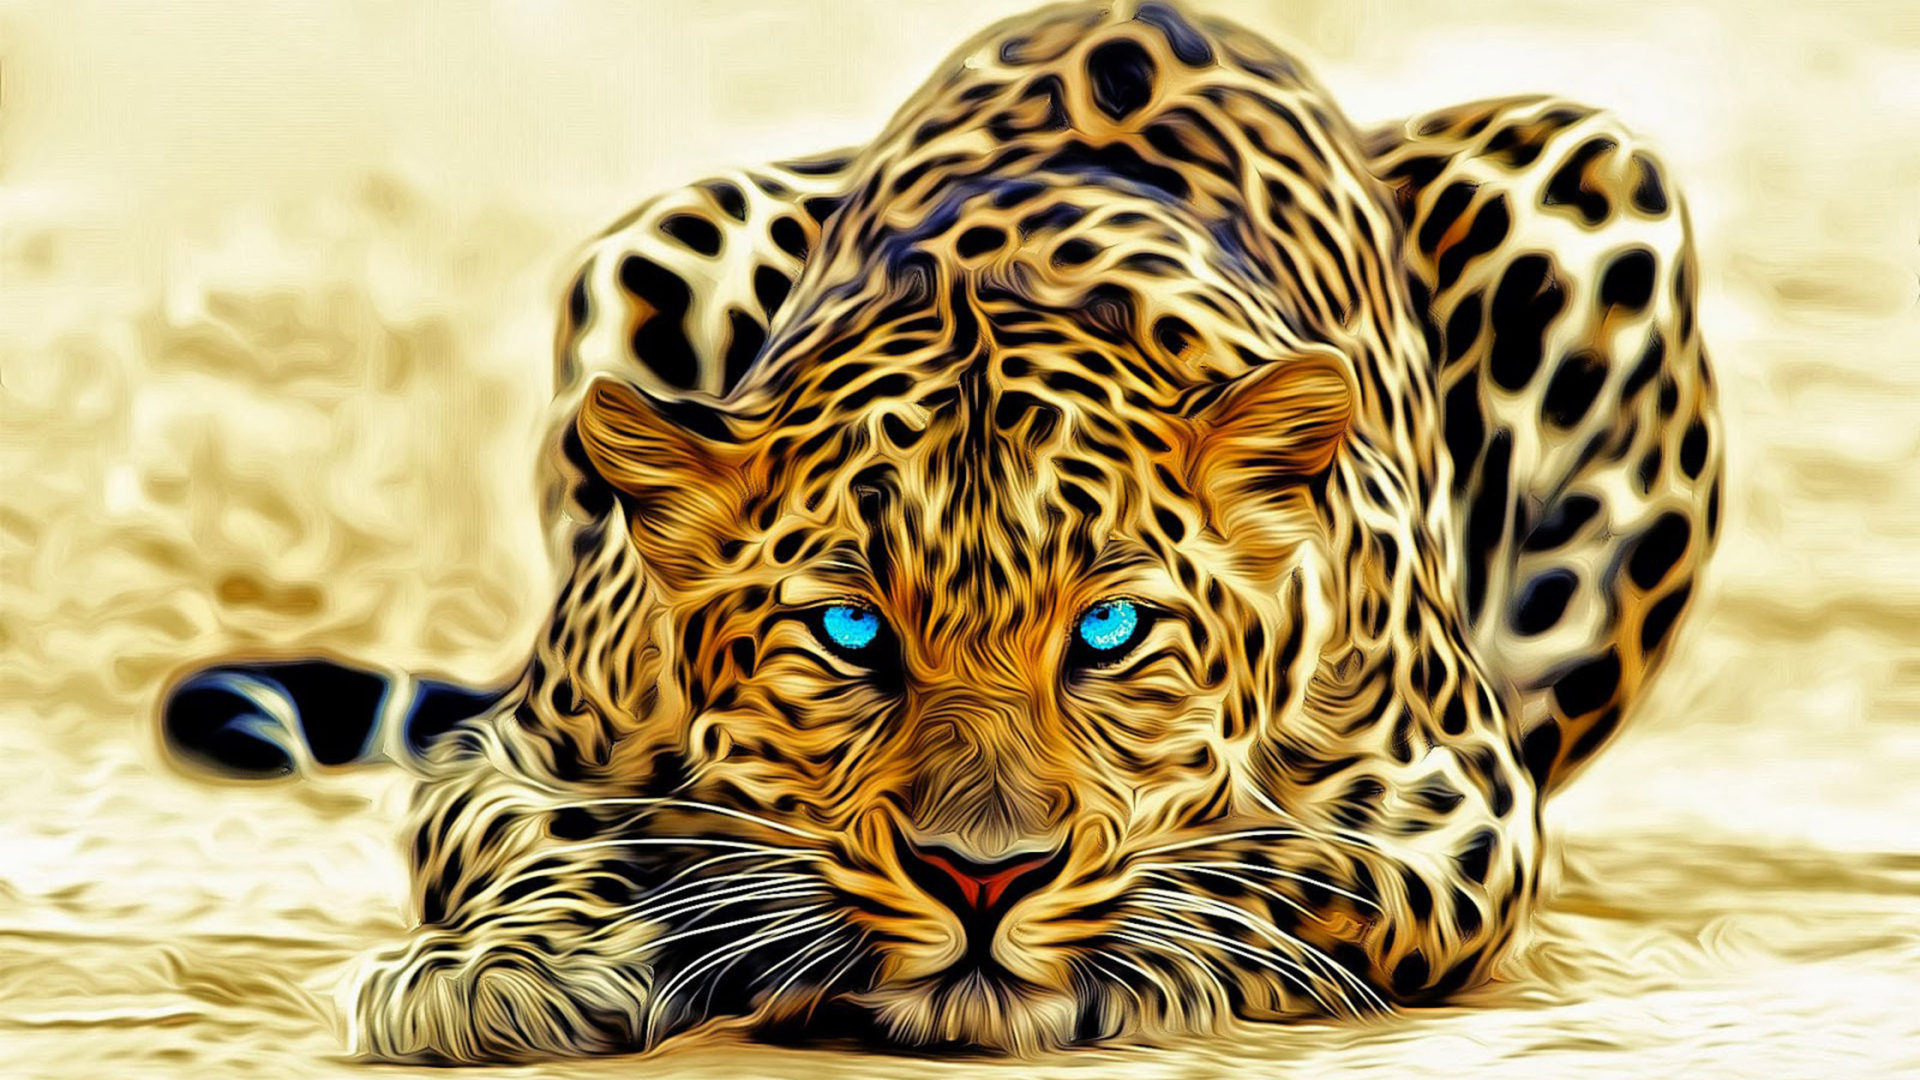 Beautiful Cars Wallpapers For Pc Leopard Art Abstract 3d Wallpaper Hd 3840x2400